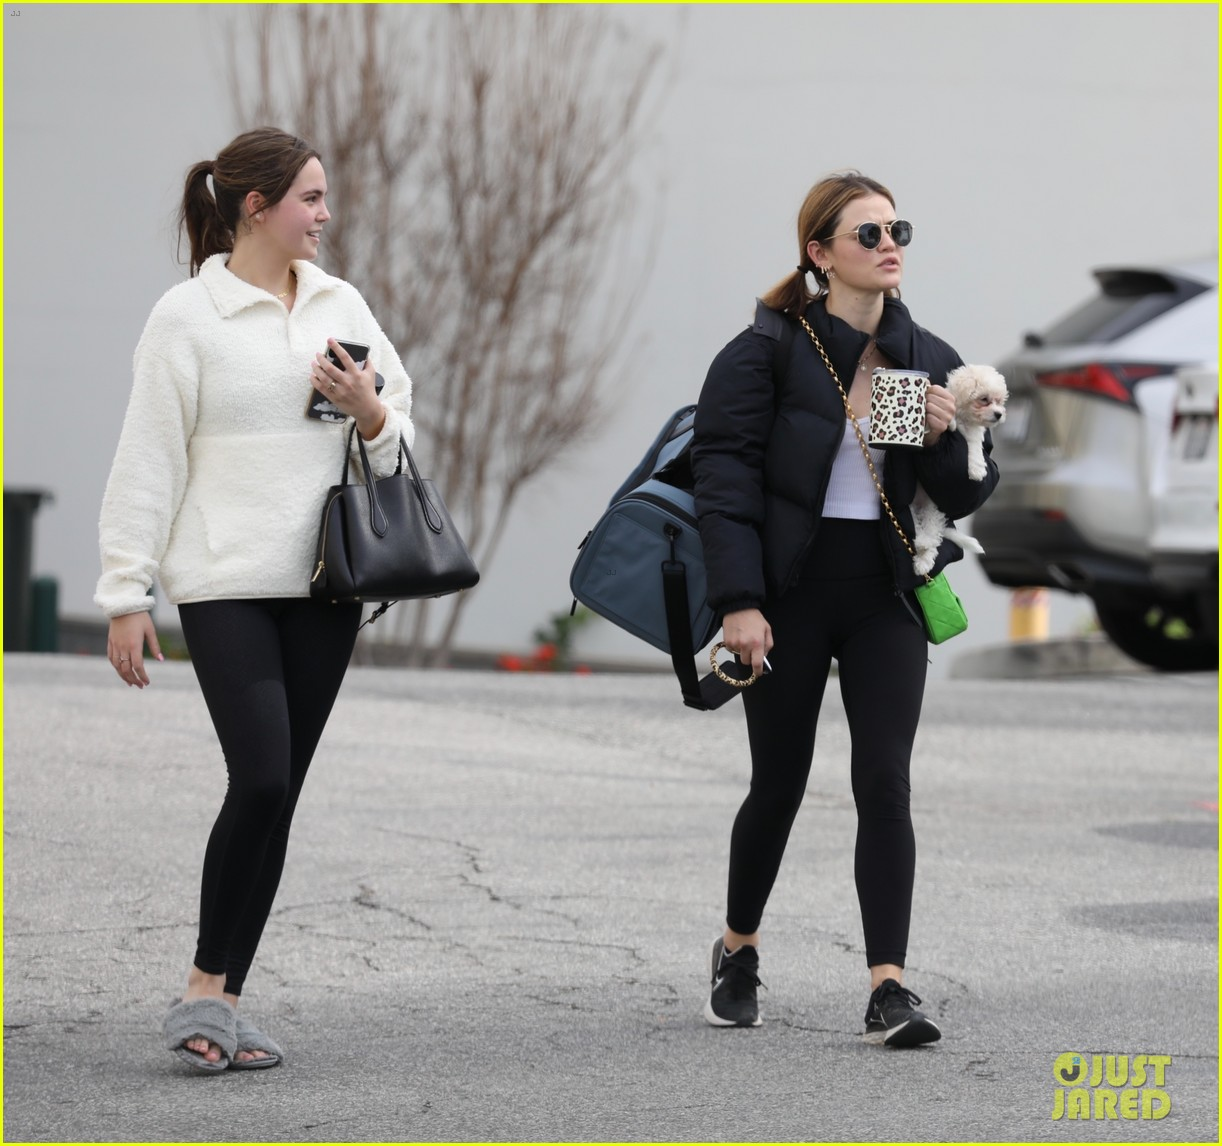 lucy hale bailee madison hit up pilates class together 04